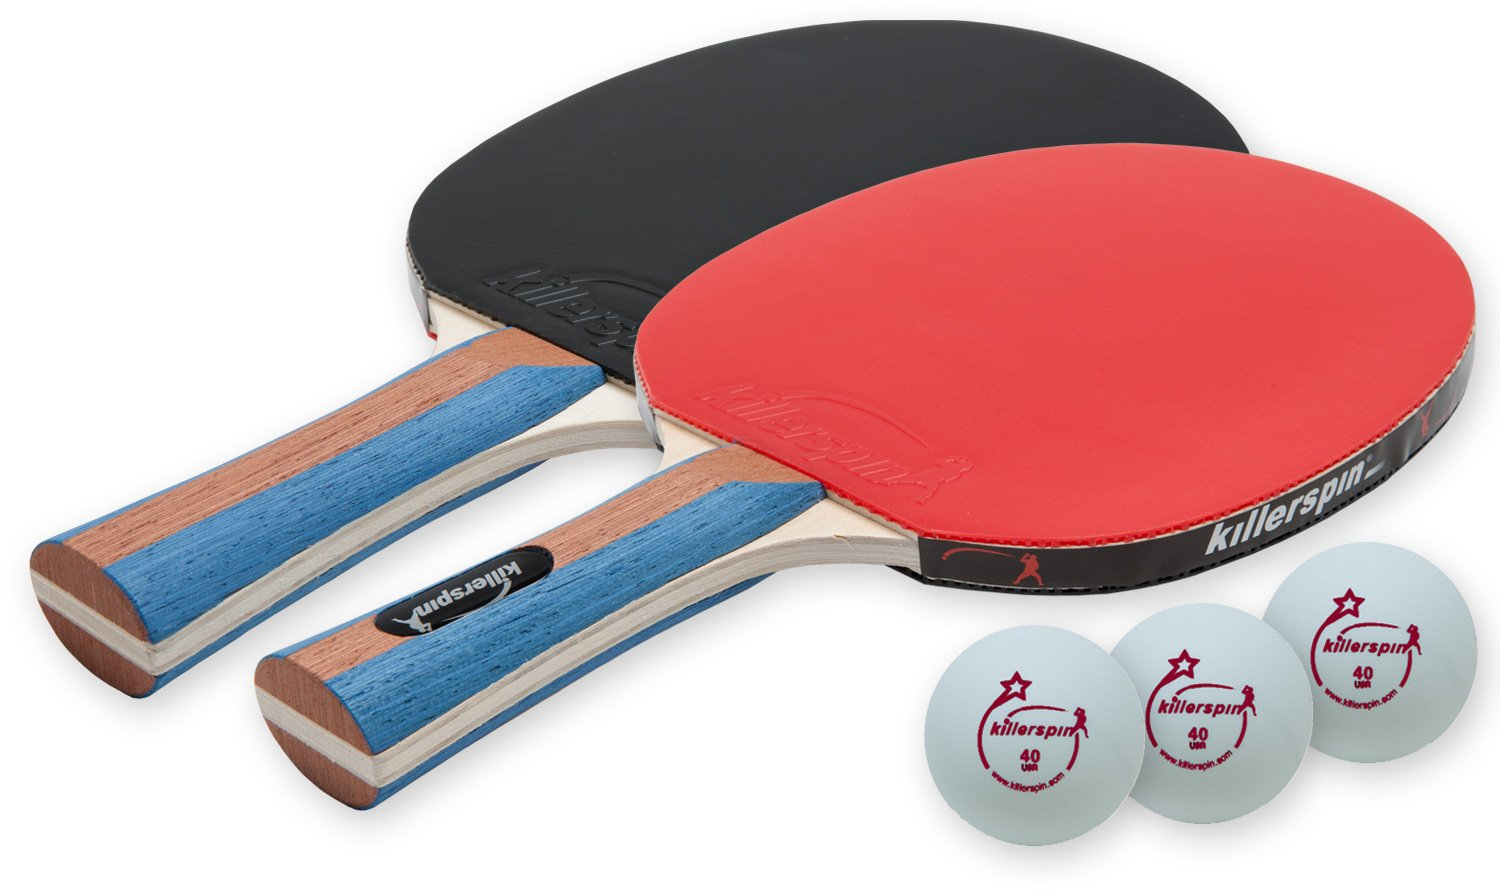 Amazon.com  Killerspin JETSET 2 - Table Tennis Set with 2 Ping Pong Paddles and 3 Ping Pong Balls  Sports \u0026 Outdoors  sc 1 st  Amazon.com & Amazon.com : Killerspin JETSET 2 - Table Tennis Set with 2 Ping Pong ...